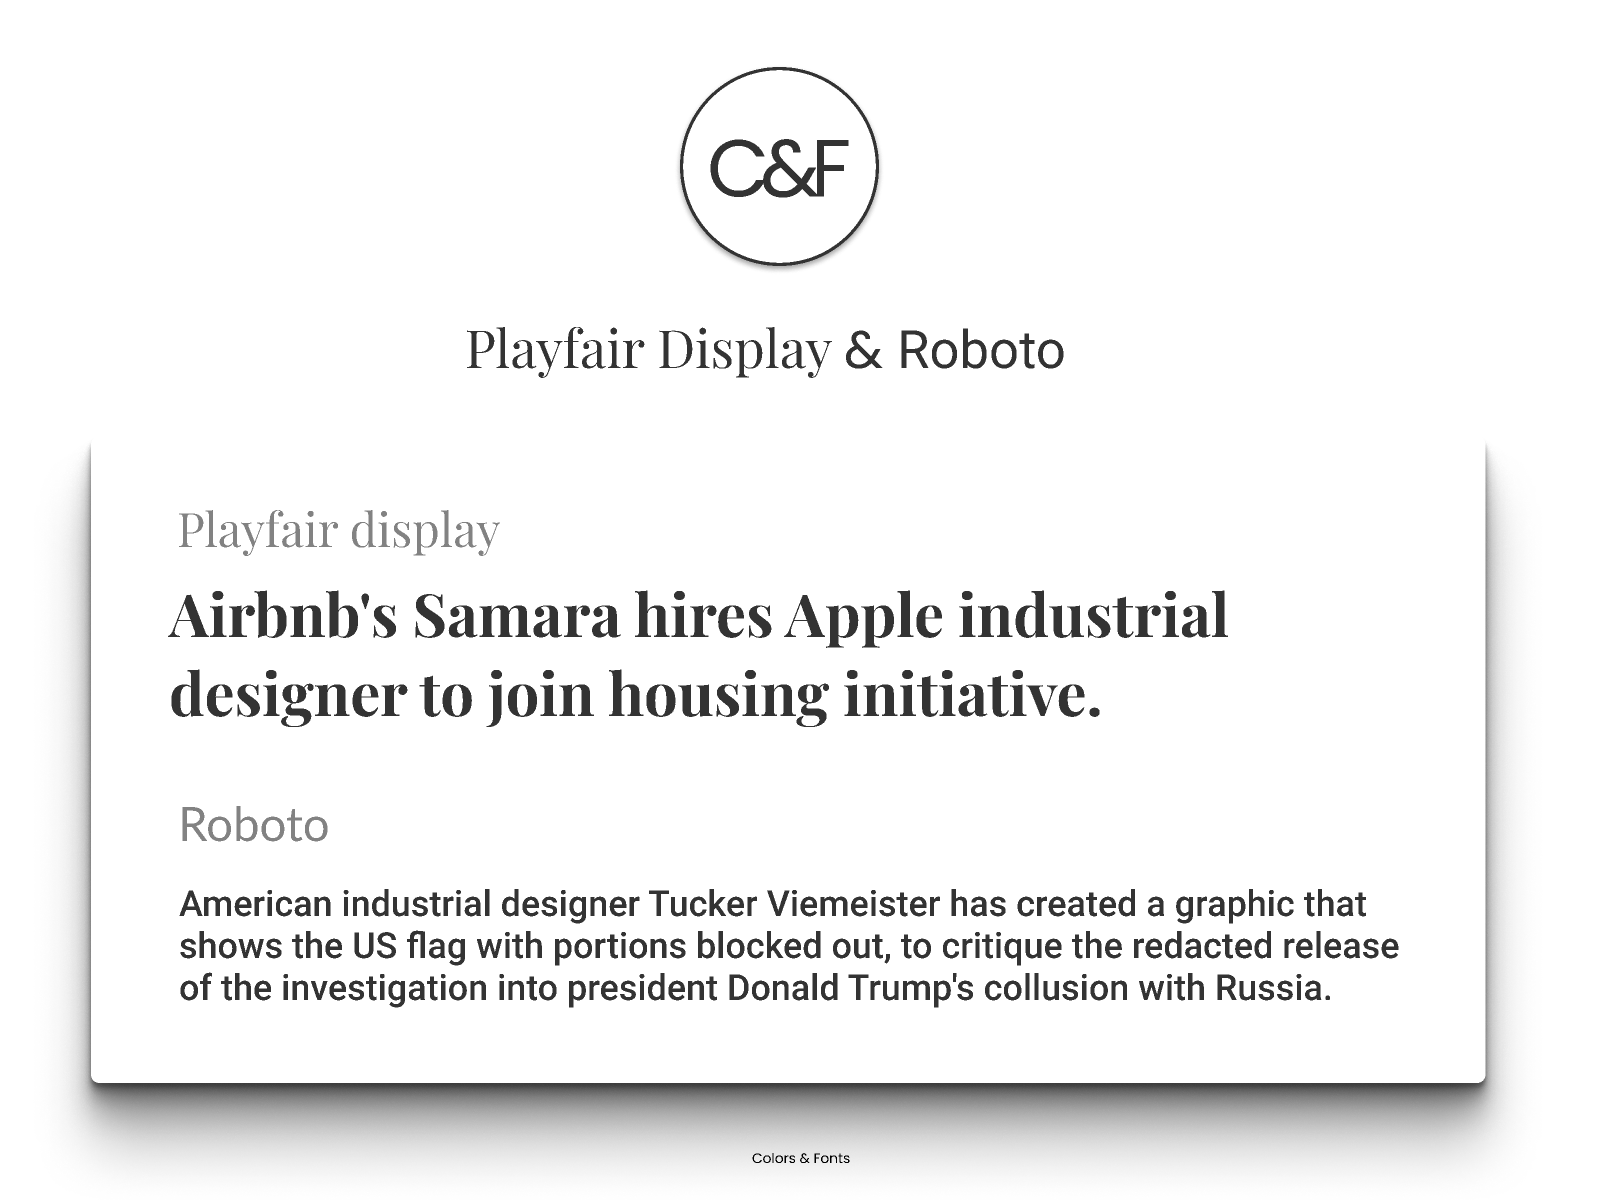 Playfair Display & Roboto by Michael Andreuzza on Dribbble